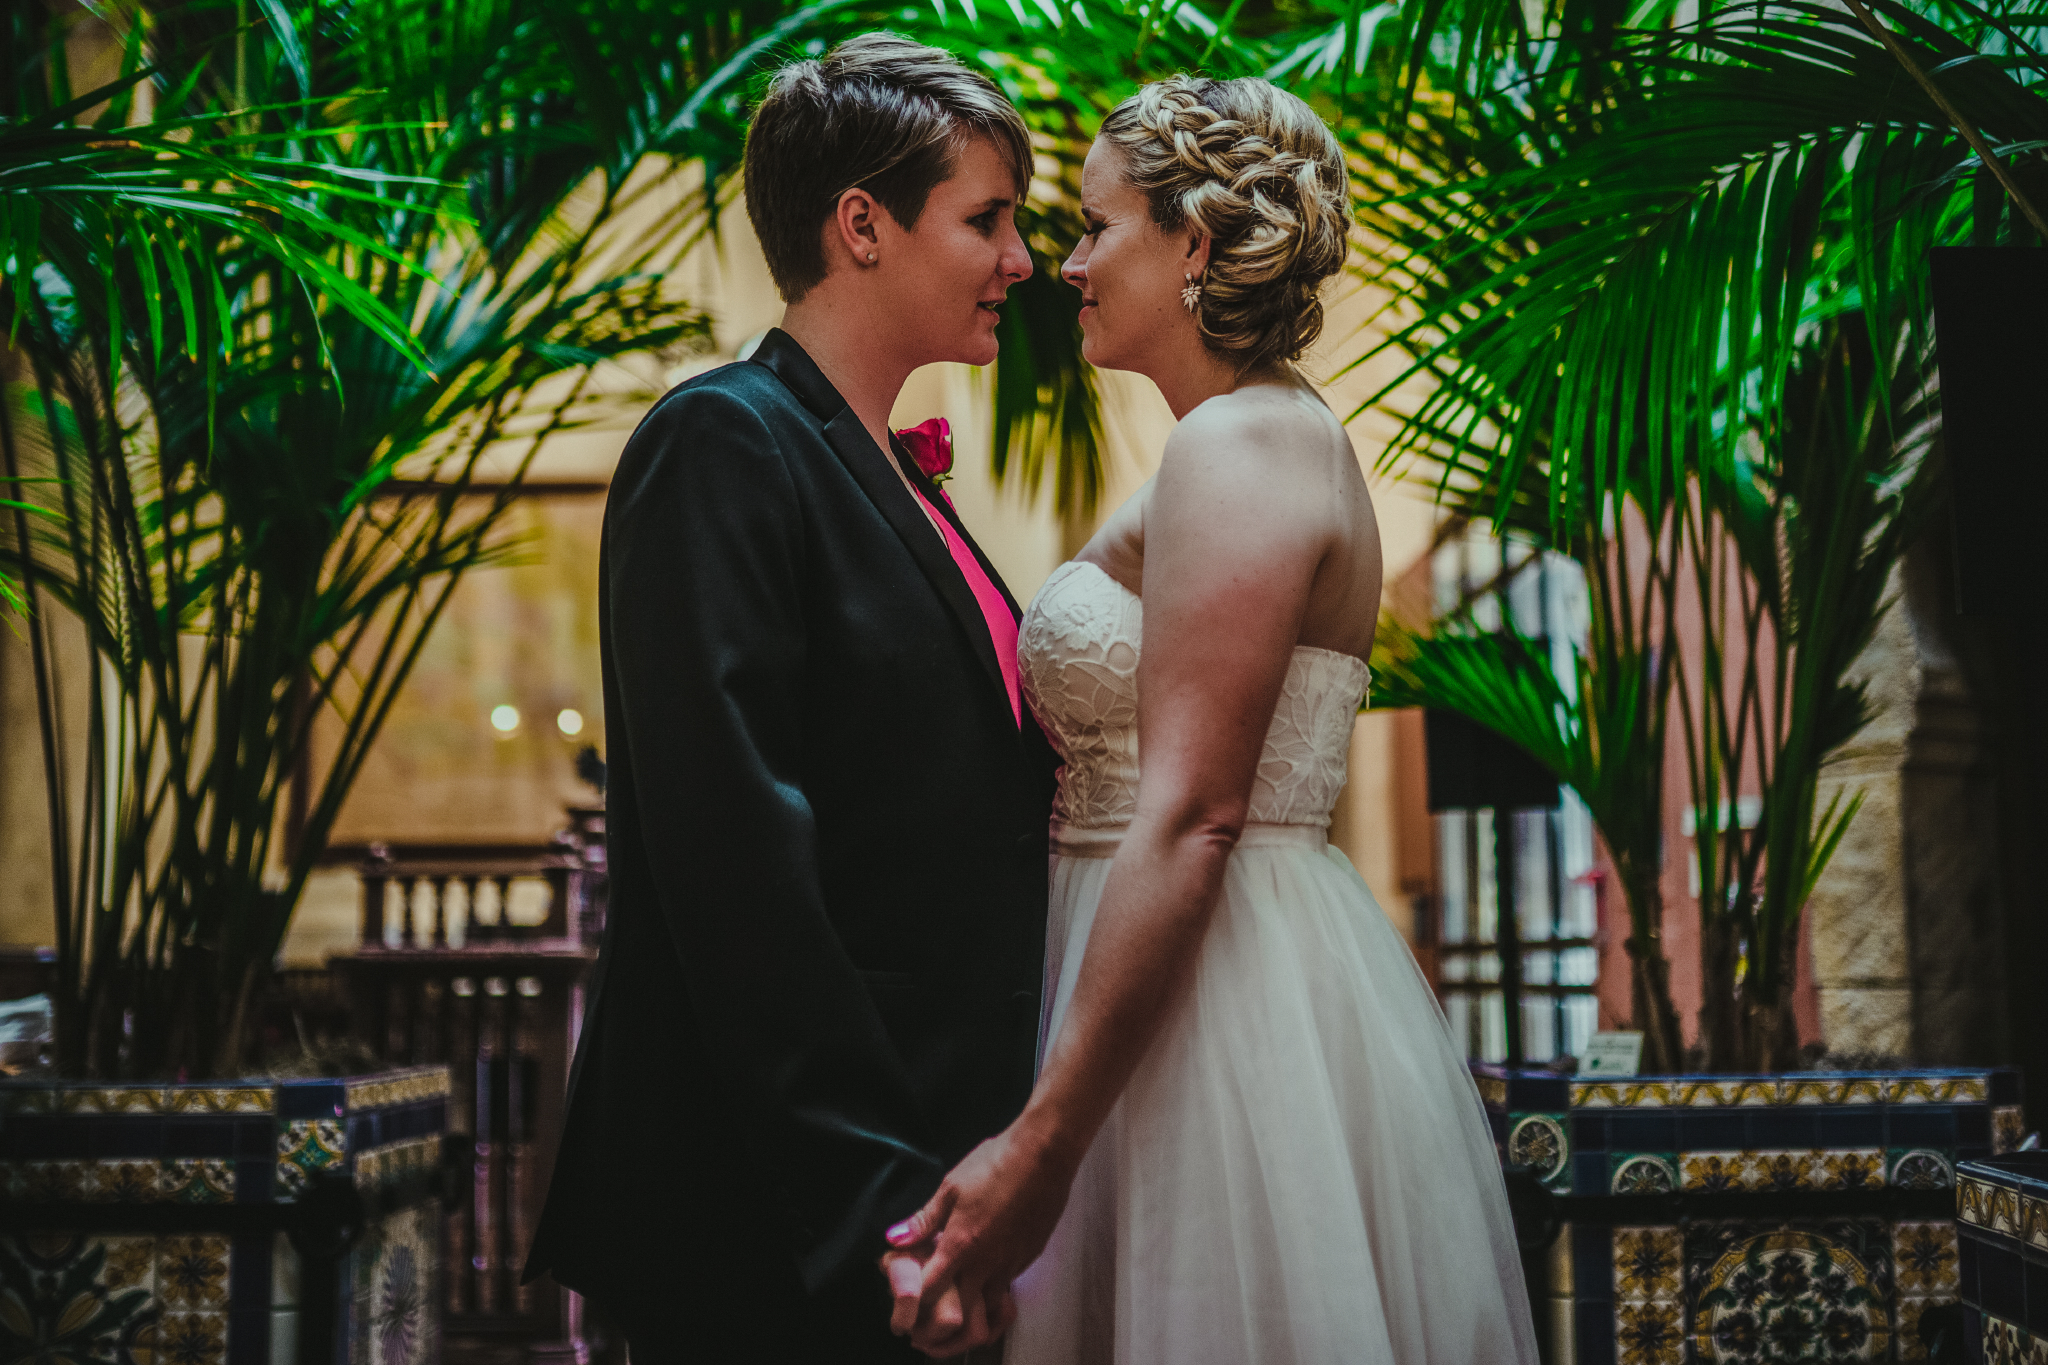 san diego wedding   photographer | women about to kiss each other with potted plants behind them